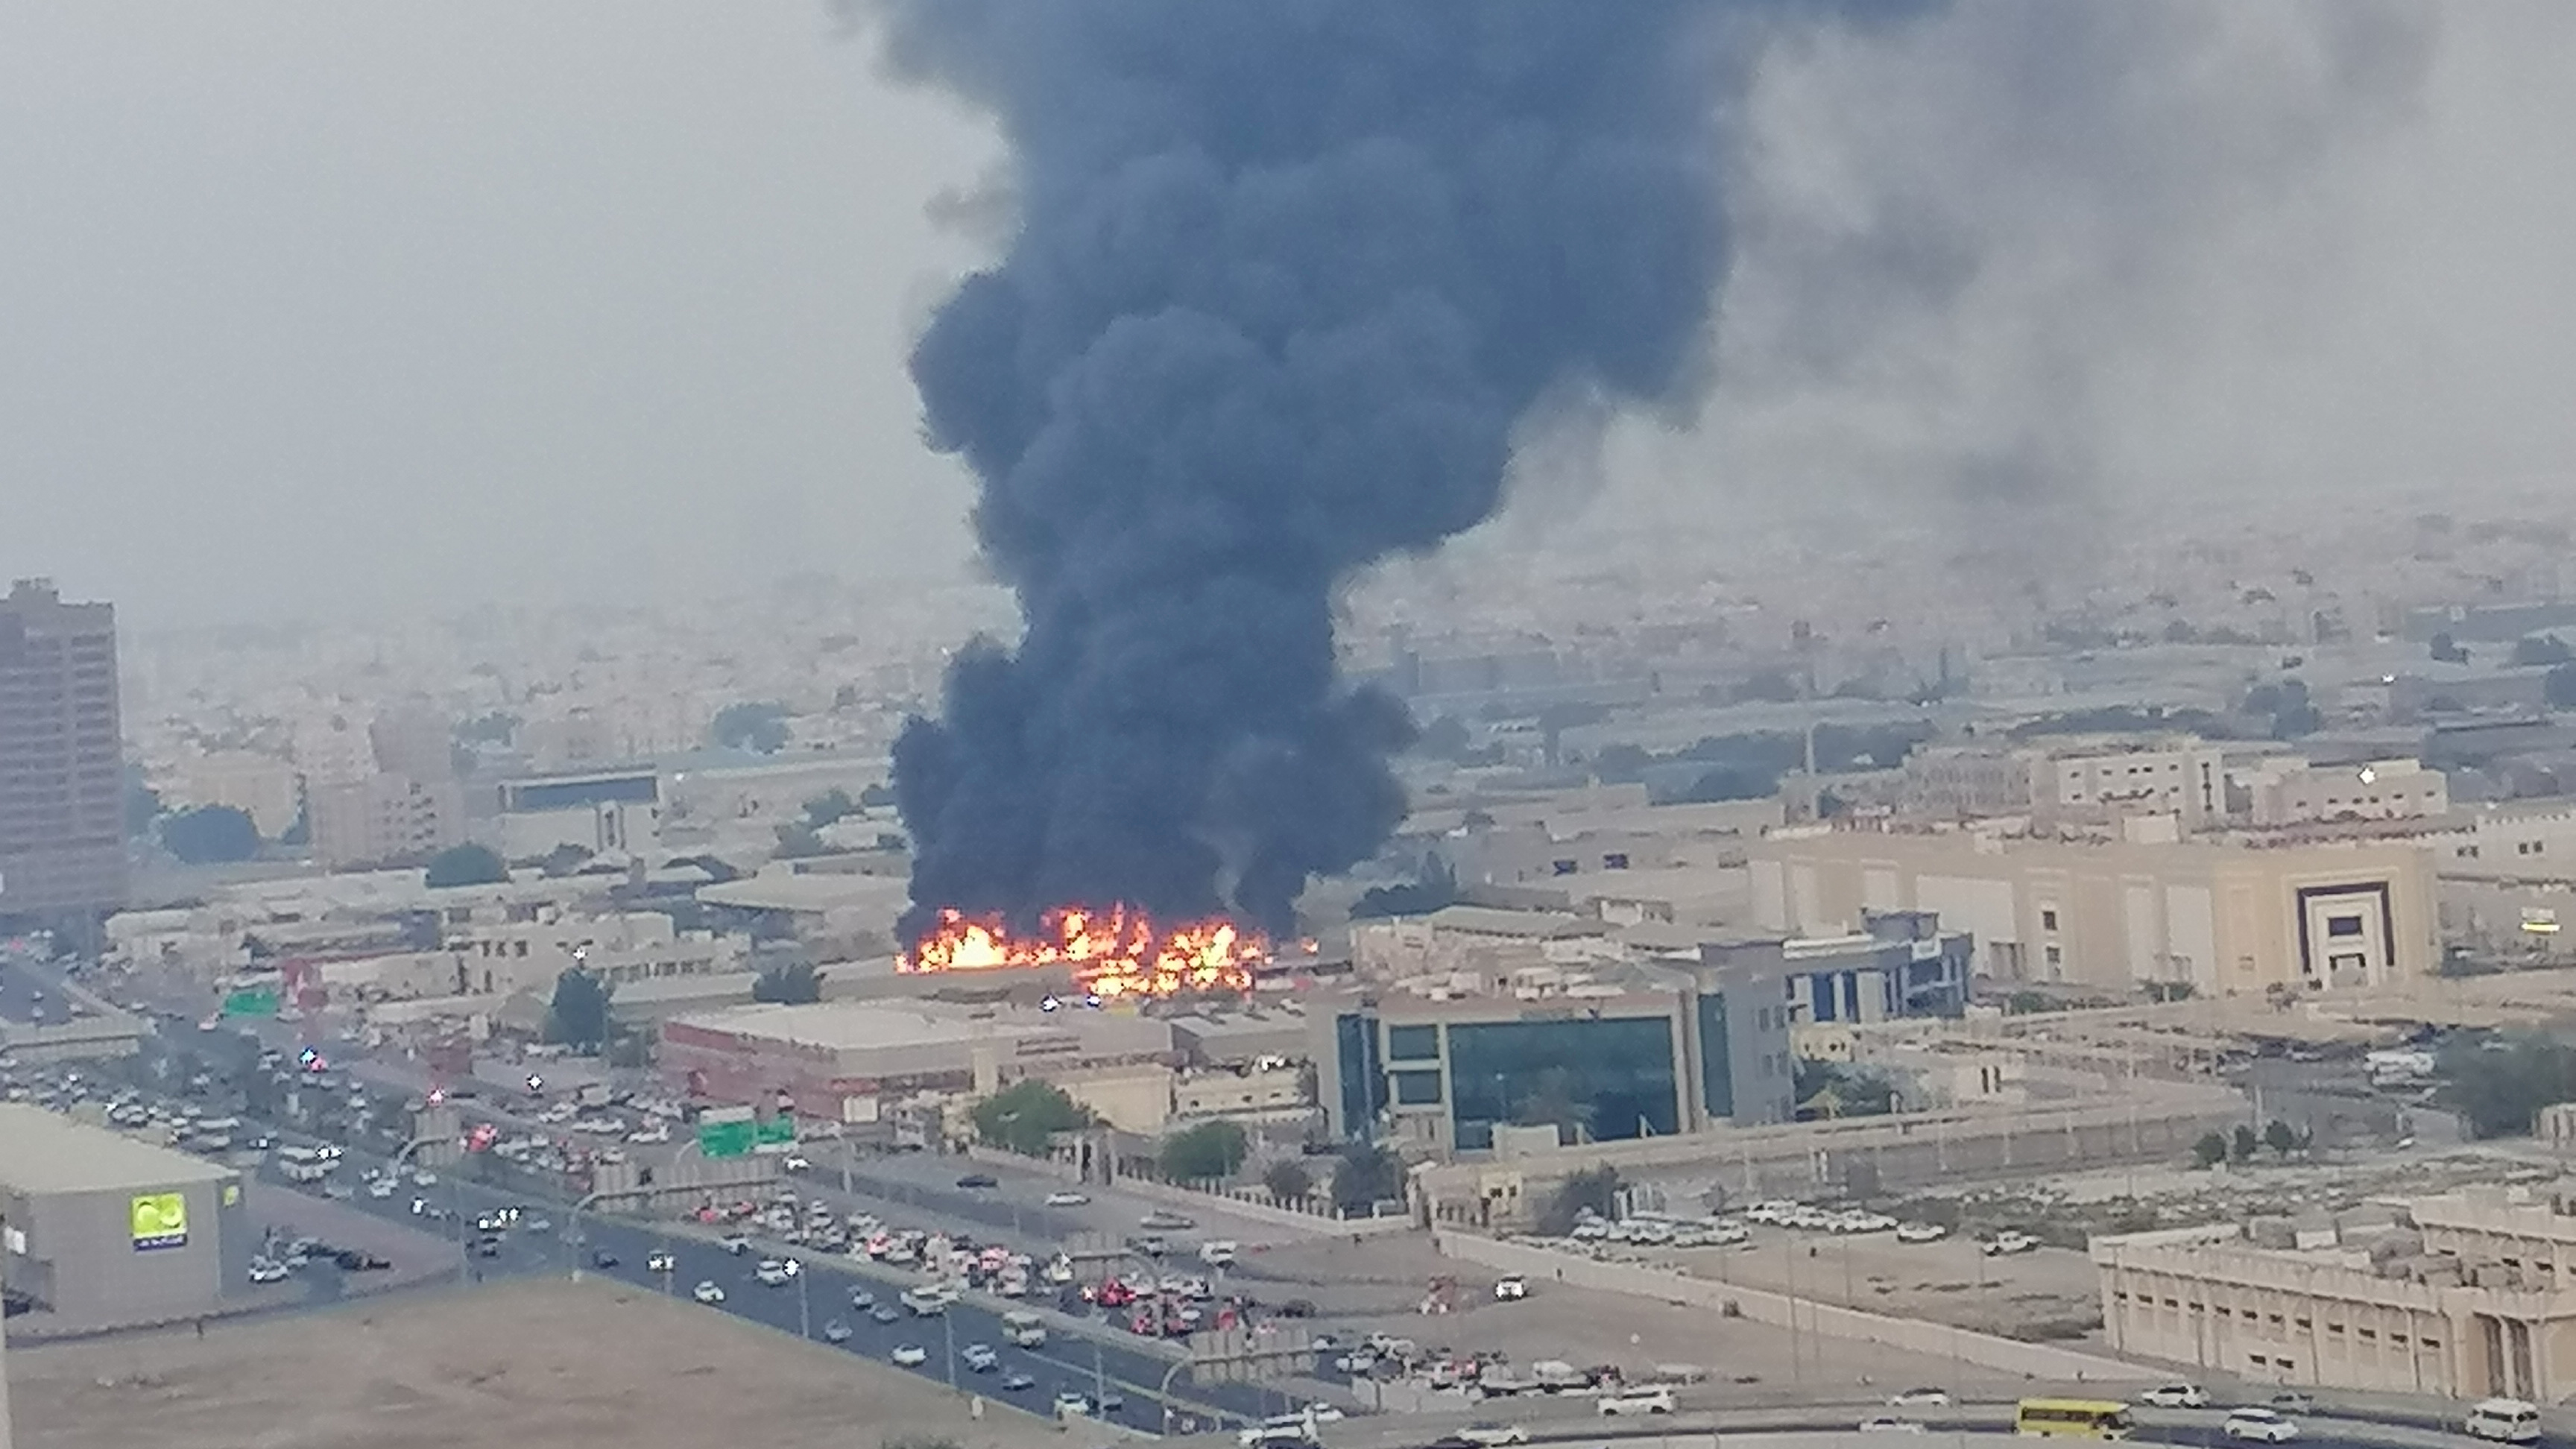 Massive fire breaks out at market in Ajman near Dubai - fox